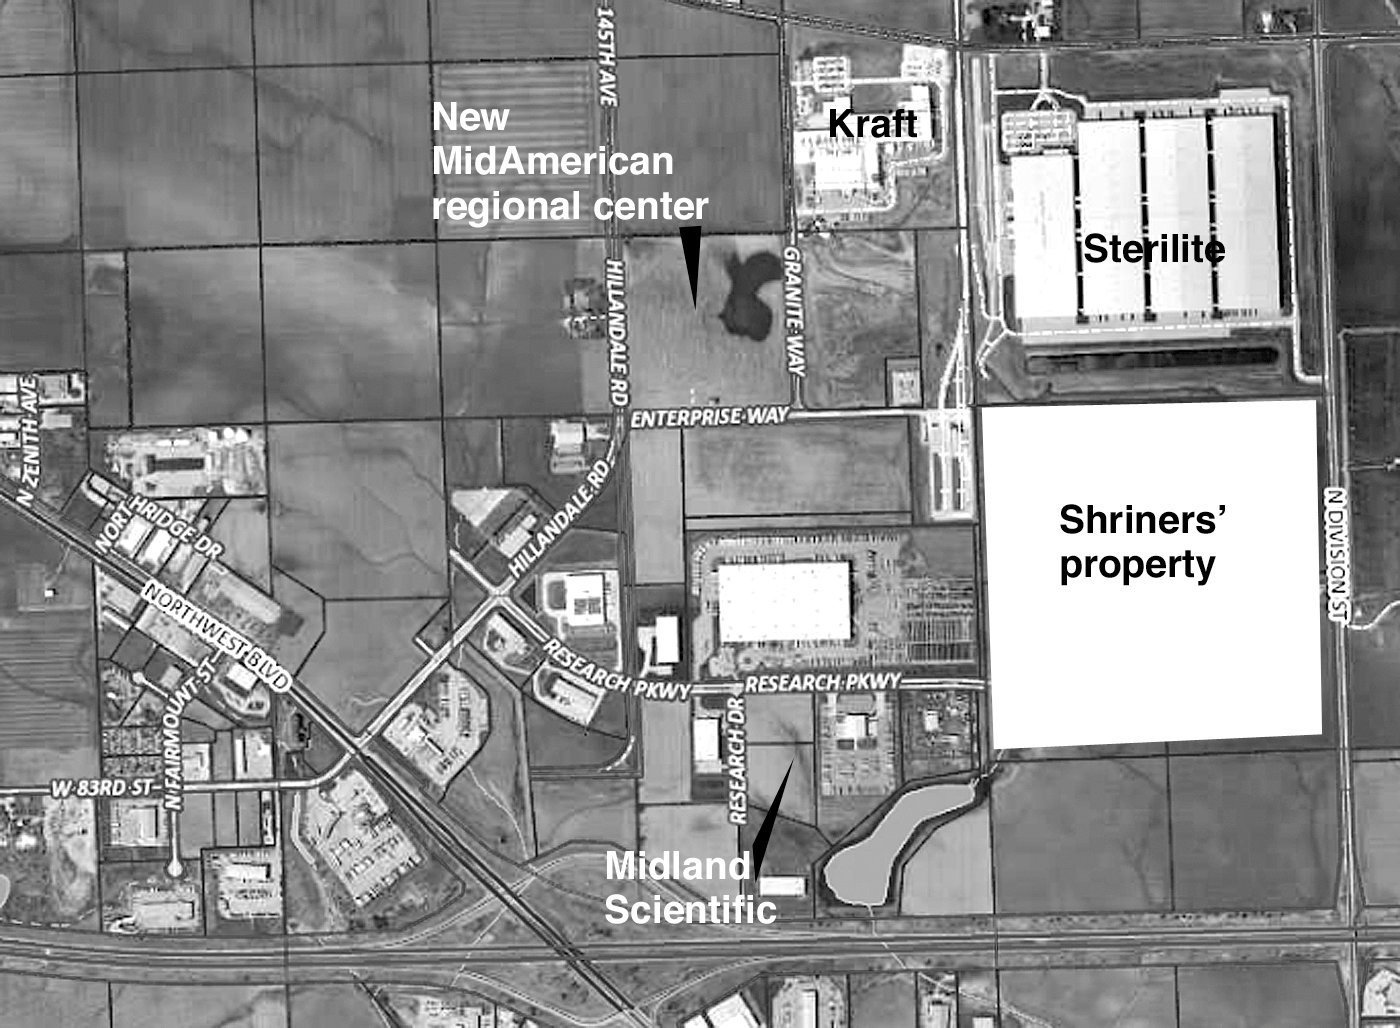 The Eastern Iowa Industrial Center now owns the Shriners' property, and welcomed Midland Scientific.